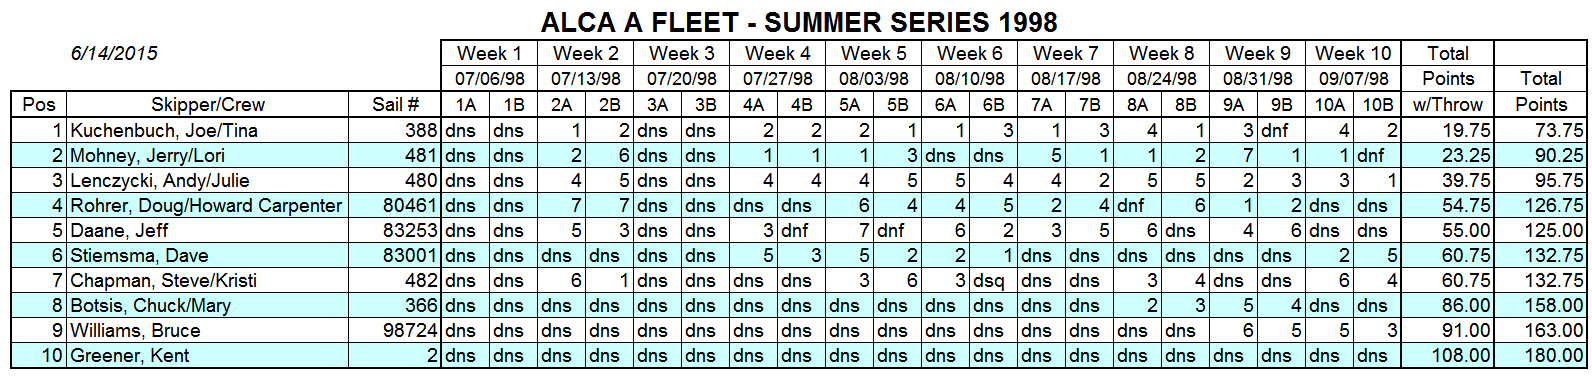 1998 Summer A Fleet Results